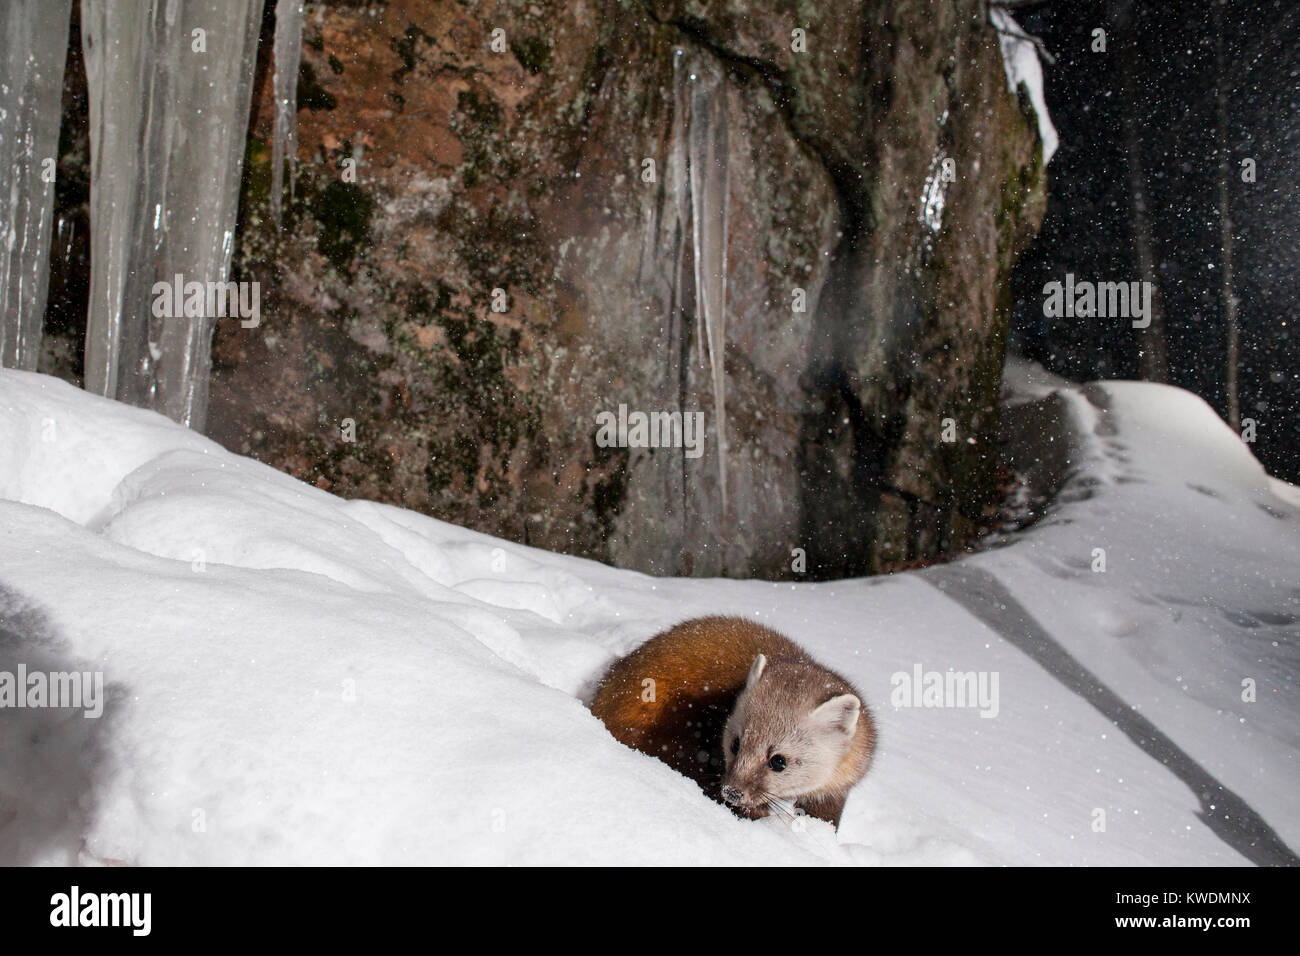 MAYNOOTH, ONTARIO, CANADA - December 25, 2017: A marten (Martes americana), part of the Weasel family / Mustelidae - Stock Image